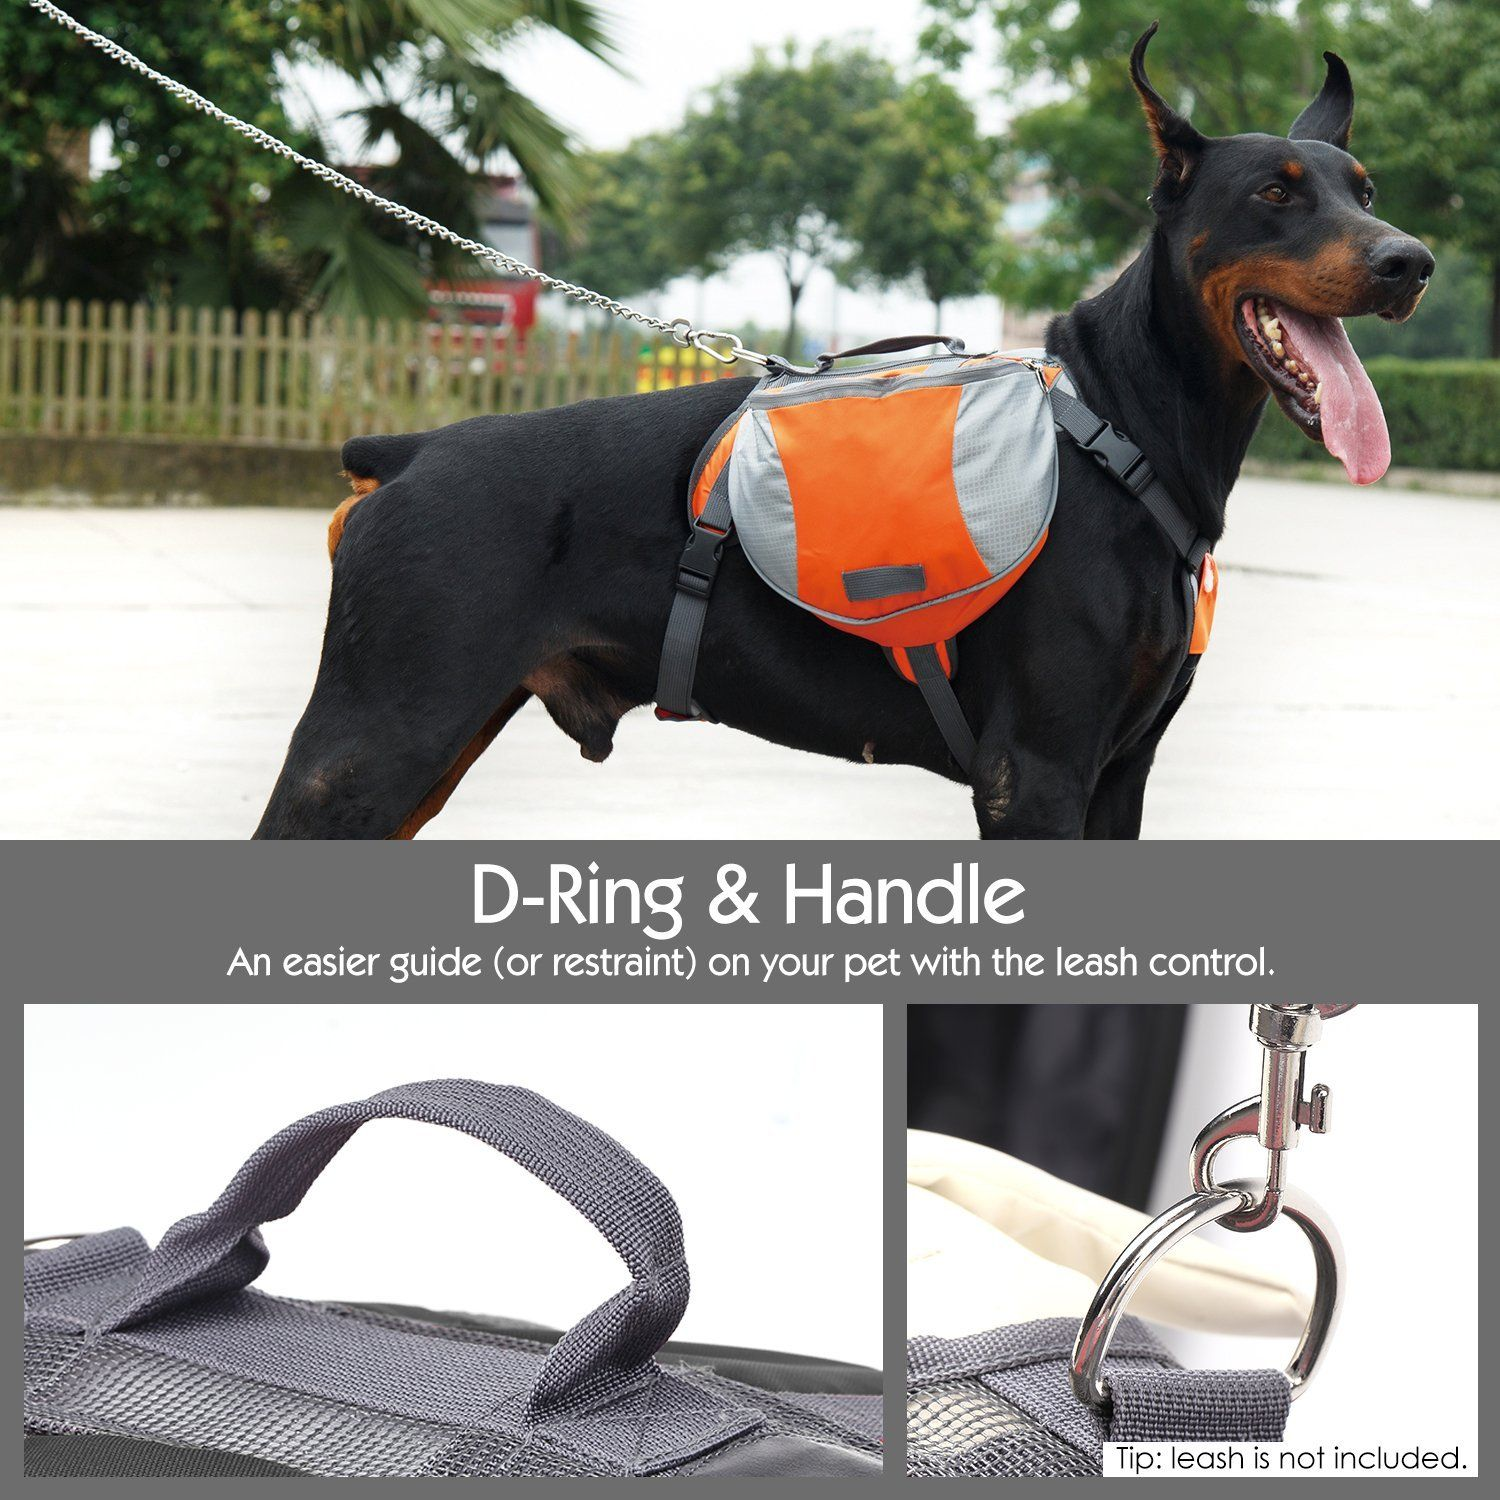 Picture Of Dog With Orange Saddlebags